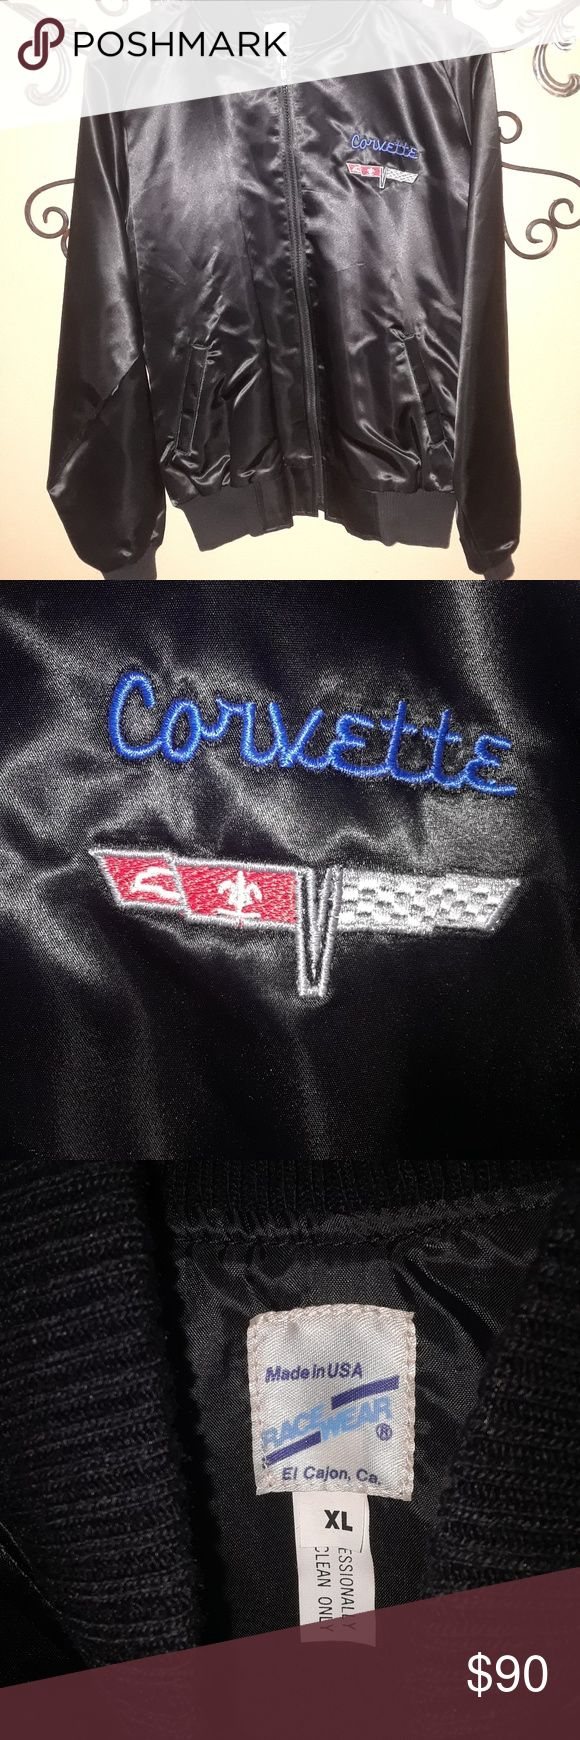 Vintage Mid America Corvette Supplies Satin Jacket Condition-Pre-Owned Worn once or twice! Any questions, feel free to ask! racewear Jackets & Coats Windbreakers